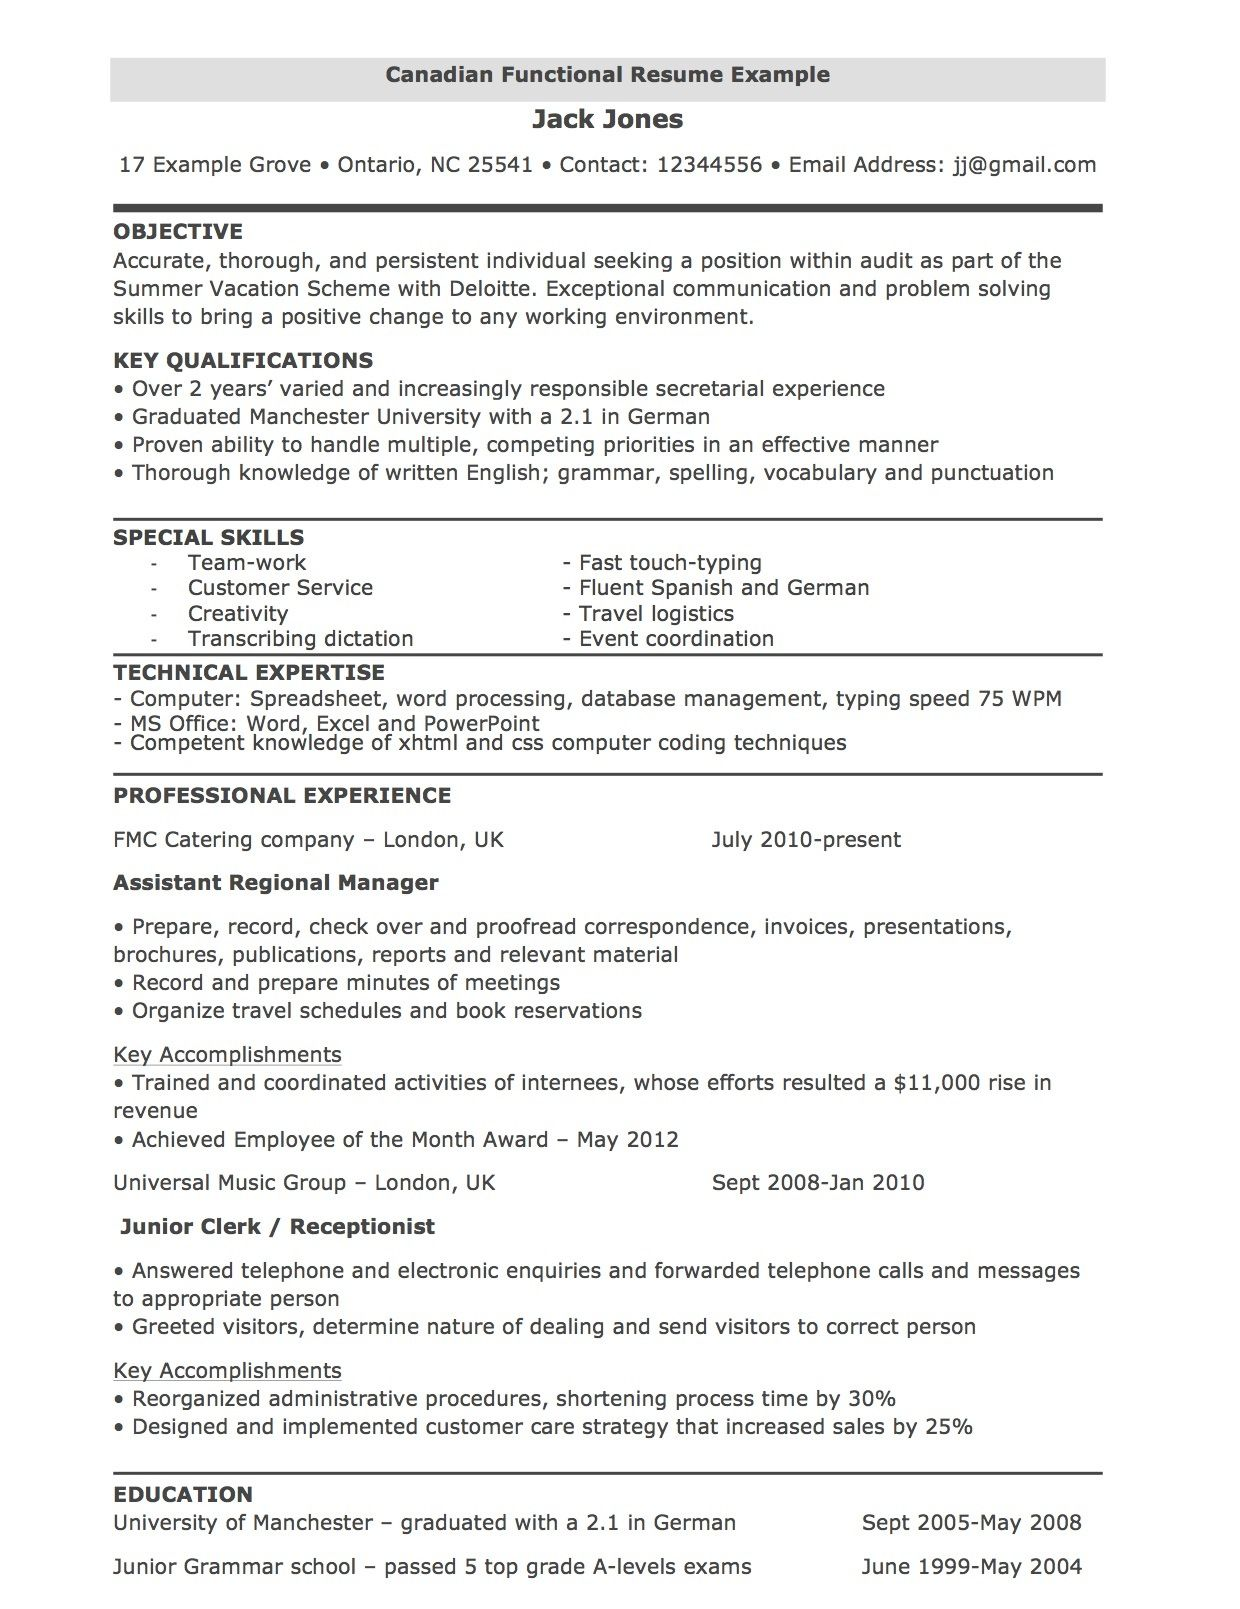 Stanford Resume Template Cover Letter Psychology Graduate School Sample Jpg Essay Topics Abou Functional Resume Functional Resume Template Resume Template Free